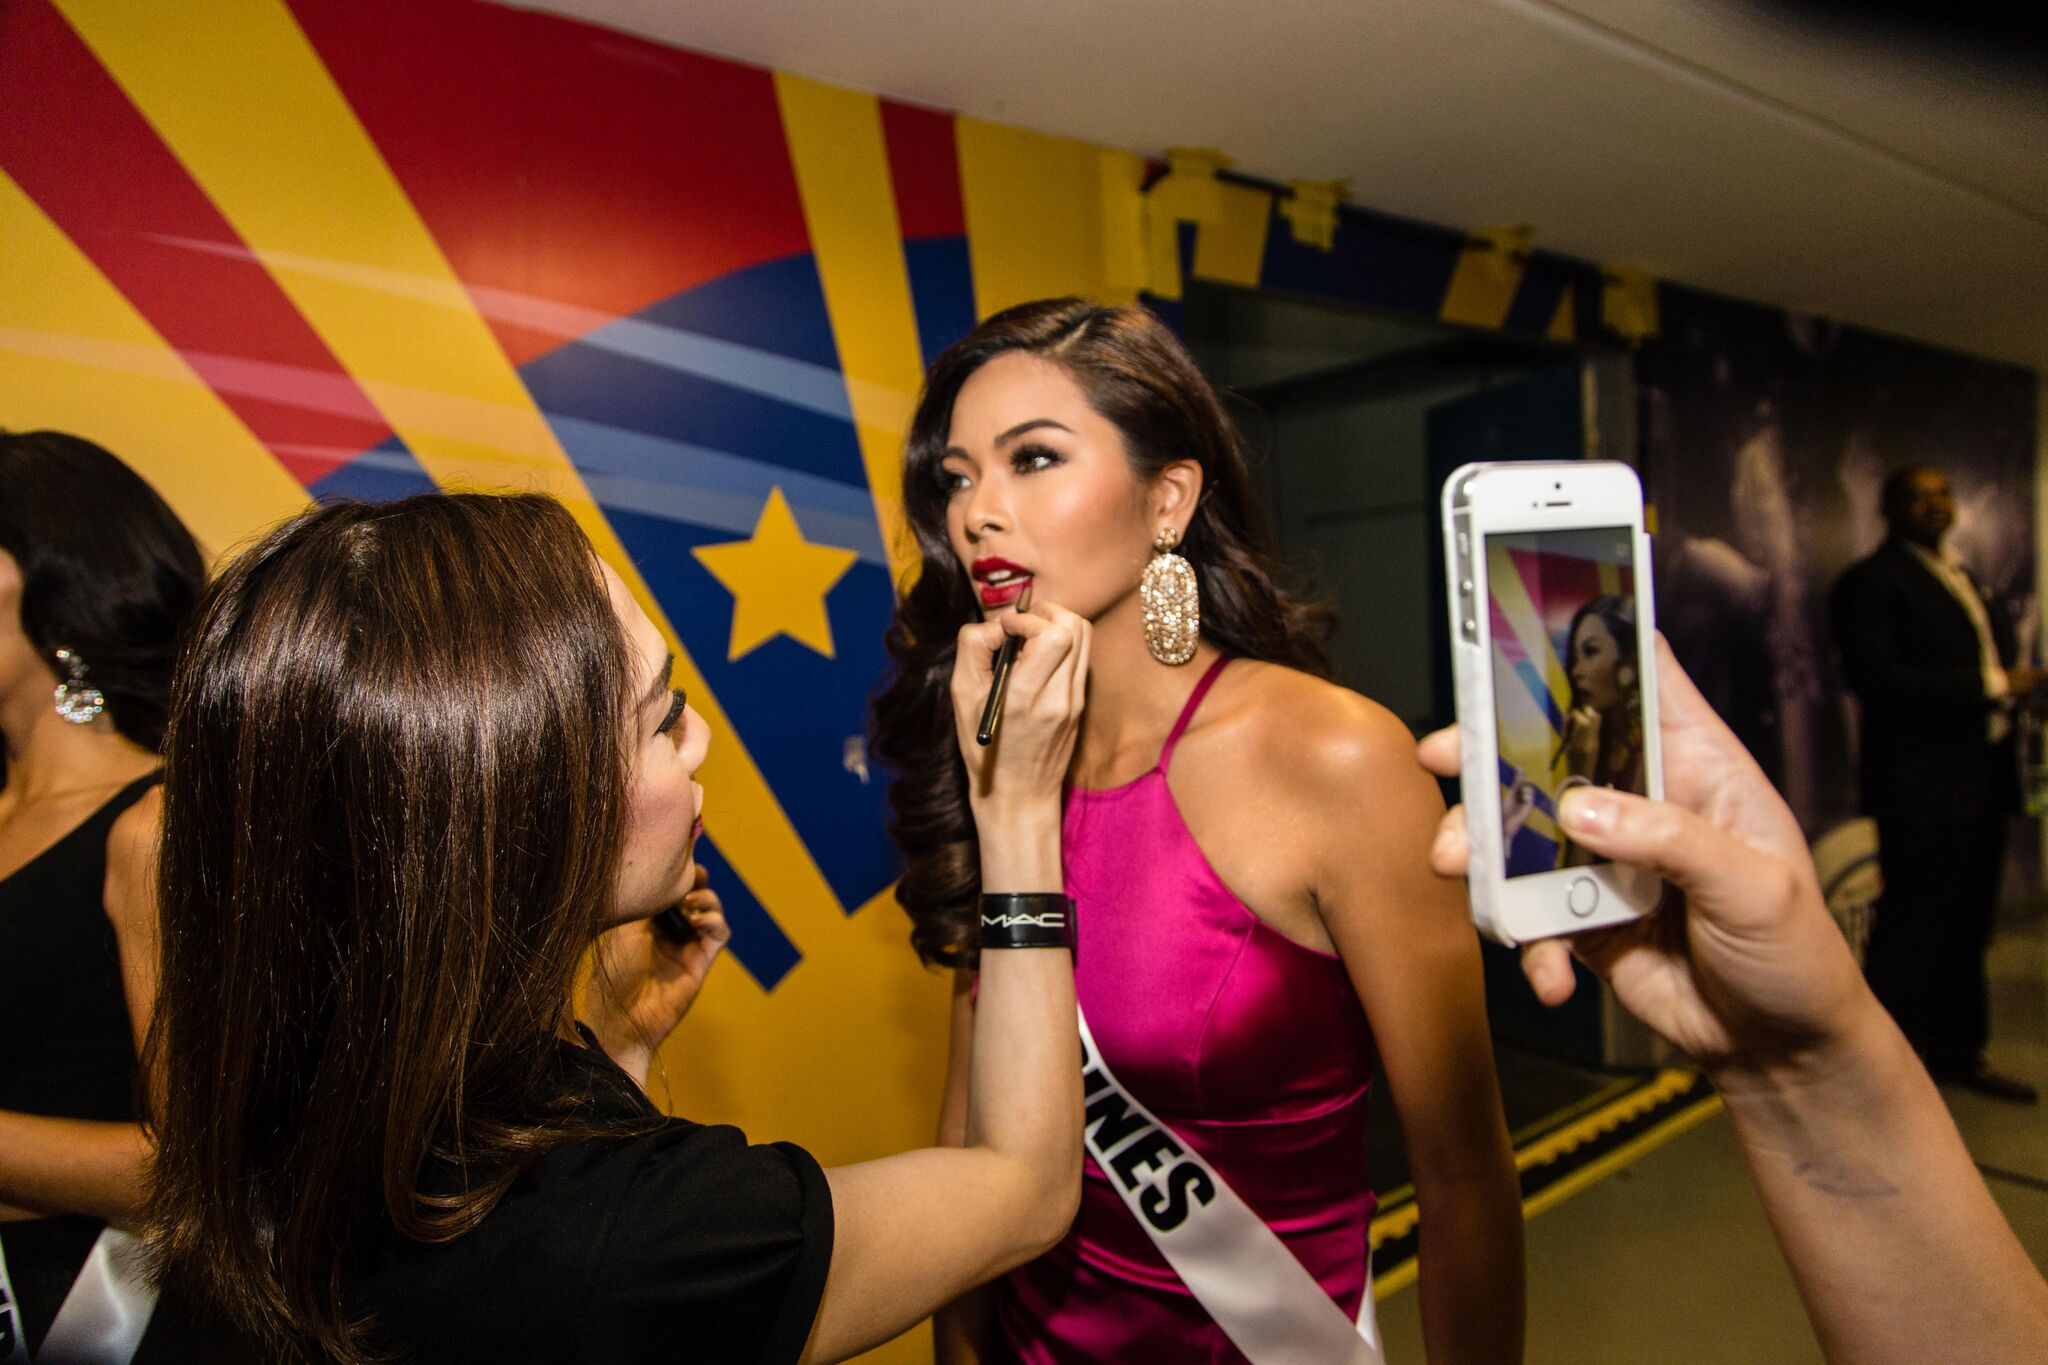 Our very own Miss Universe Philippines, Maxine Medina, getting prepped backstage.